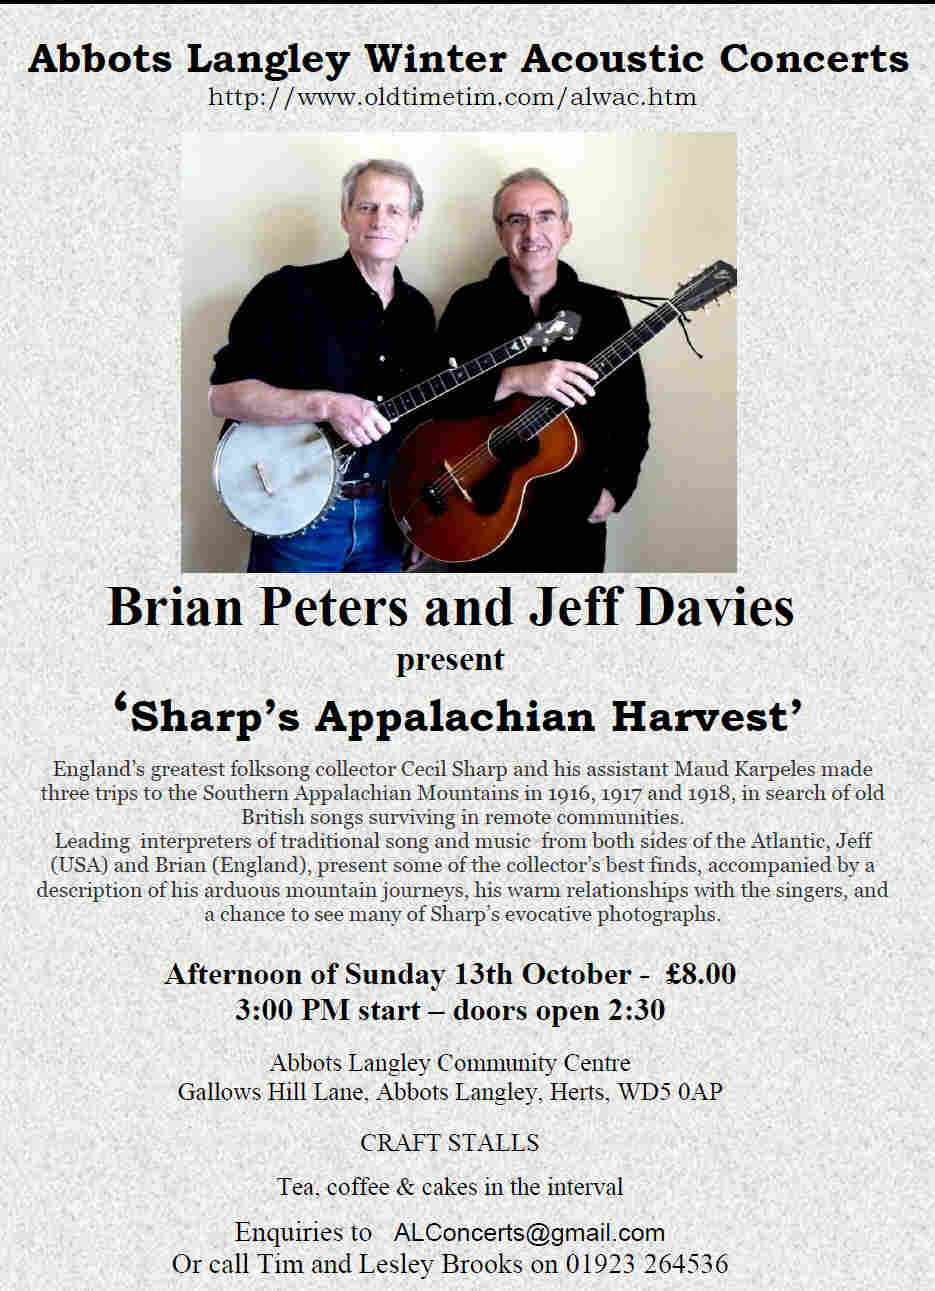 Brian Peters and Jeff Davies Image